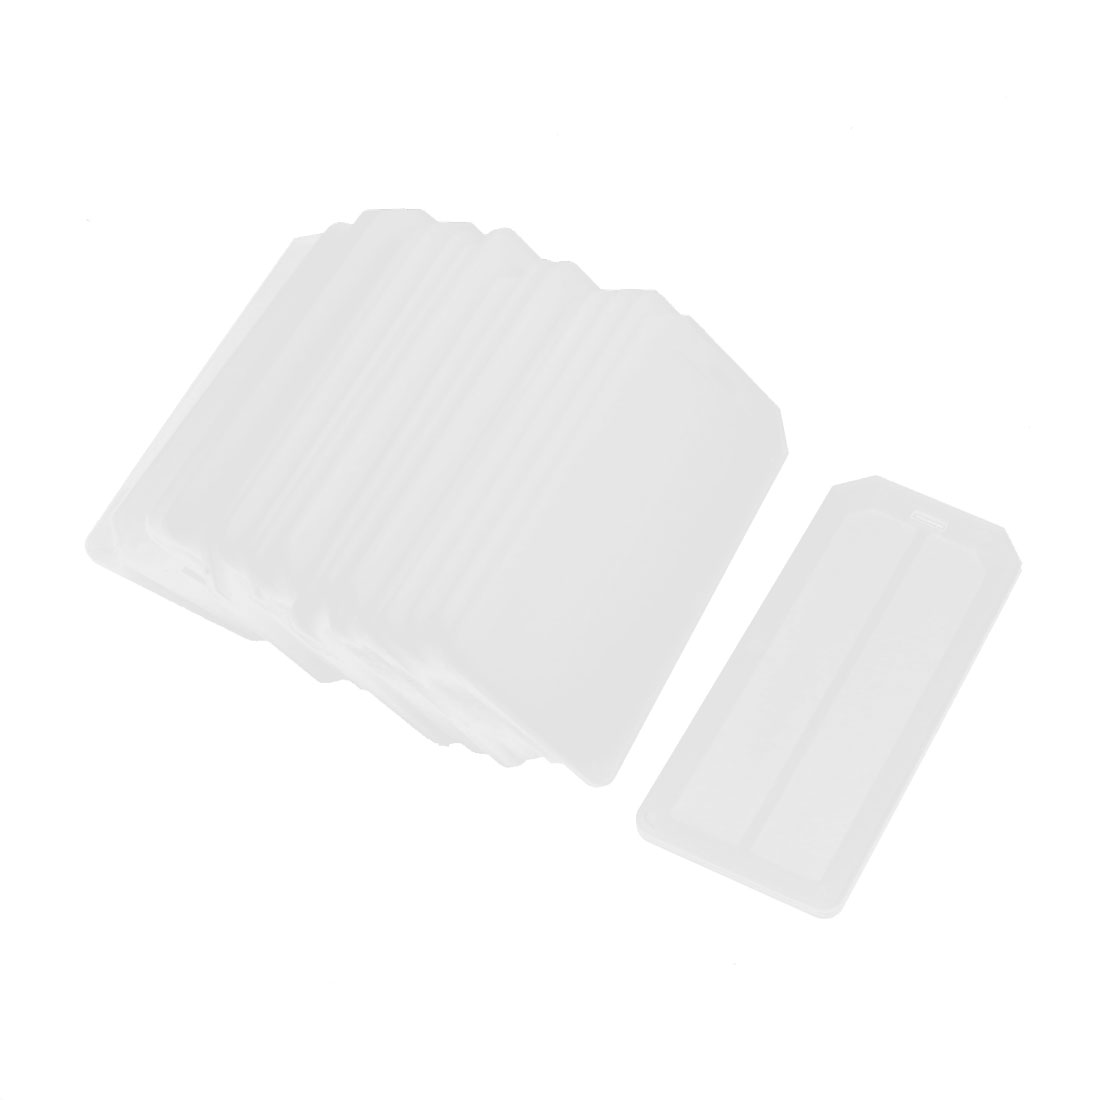 20pcs 72mm x 31mm Rectangle White Plastic Blank Hanging Cable Marker Plate Tag Label Identification